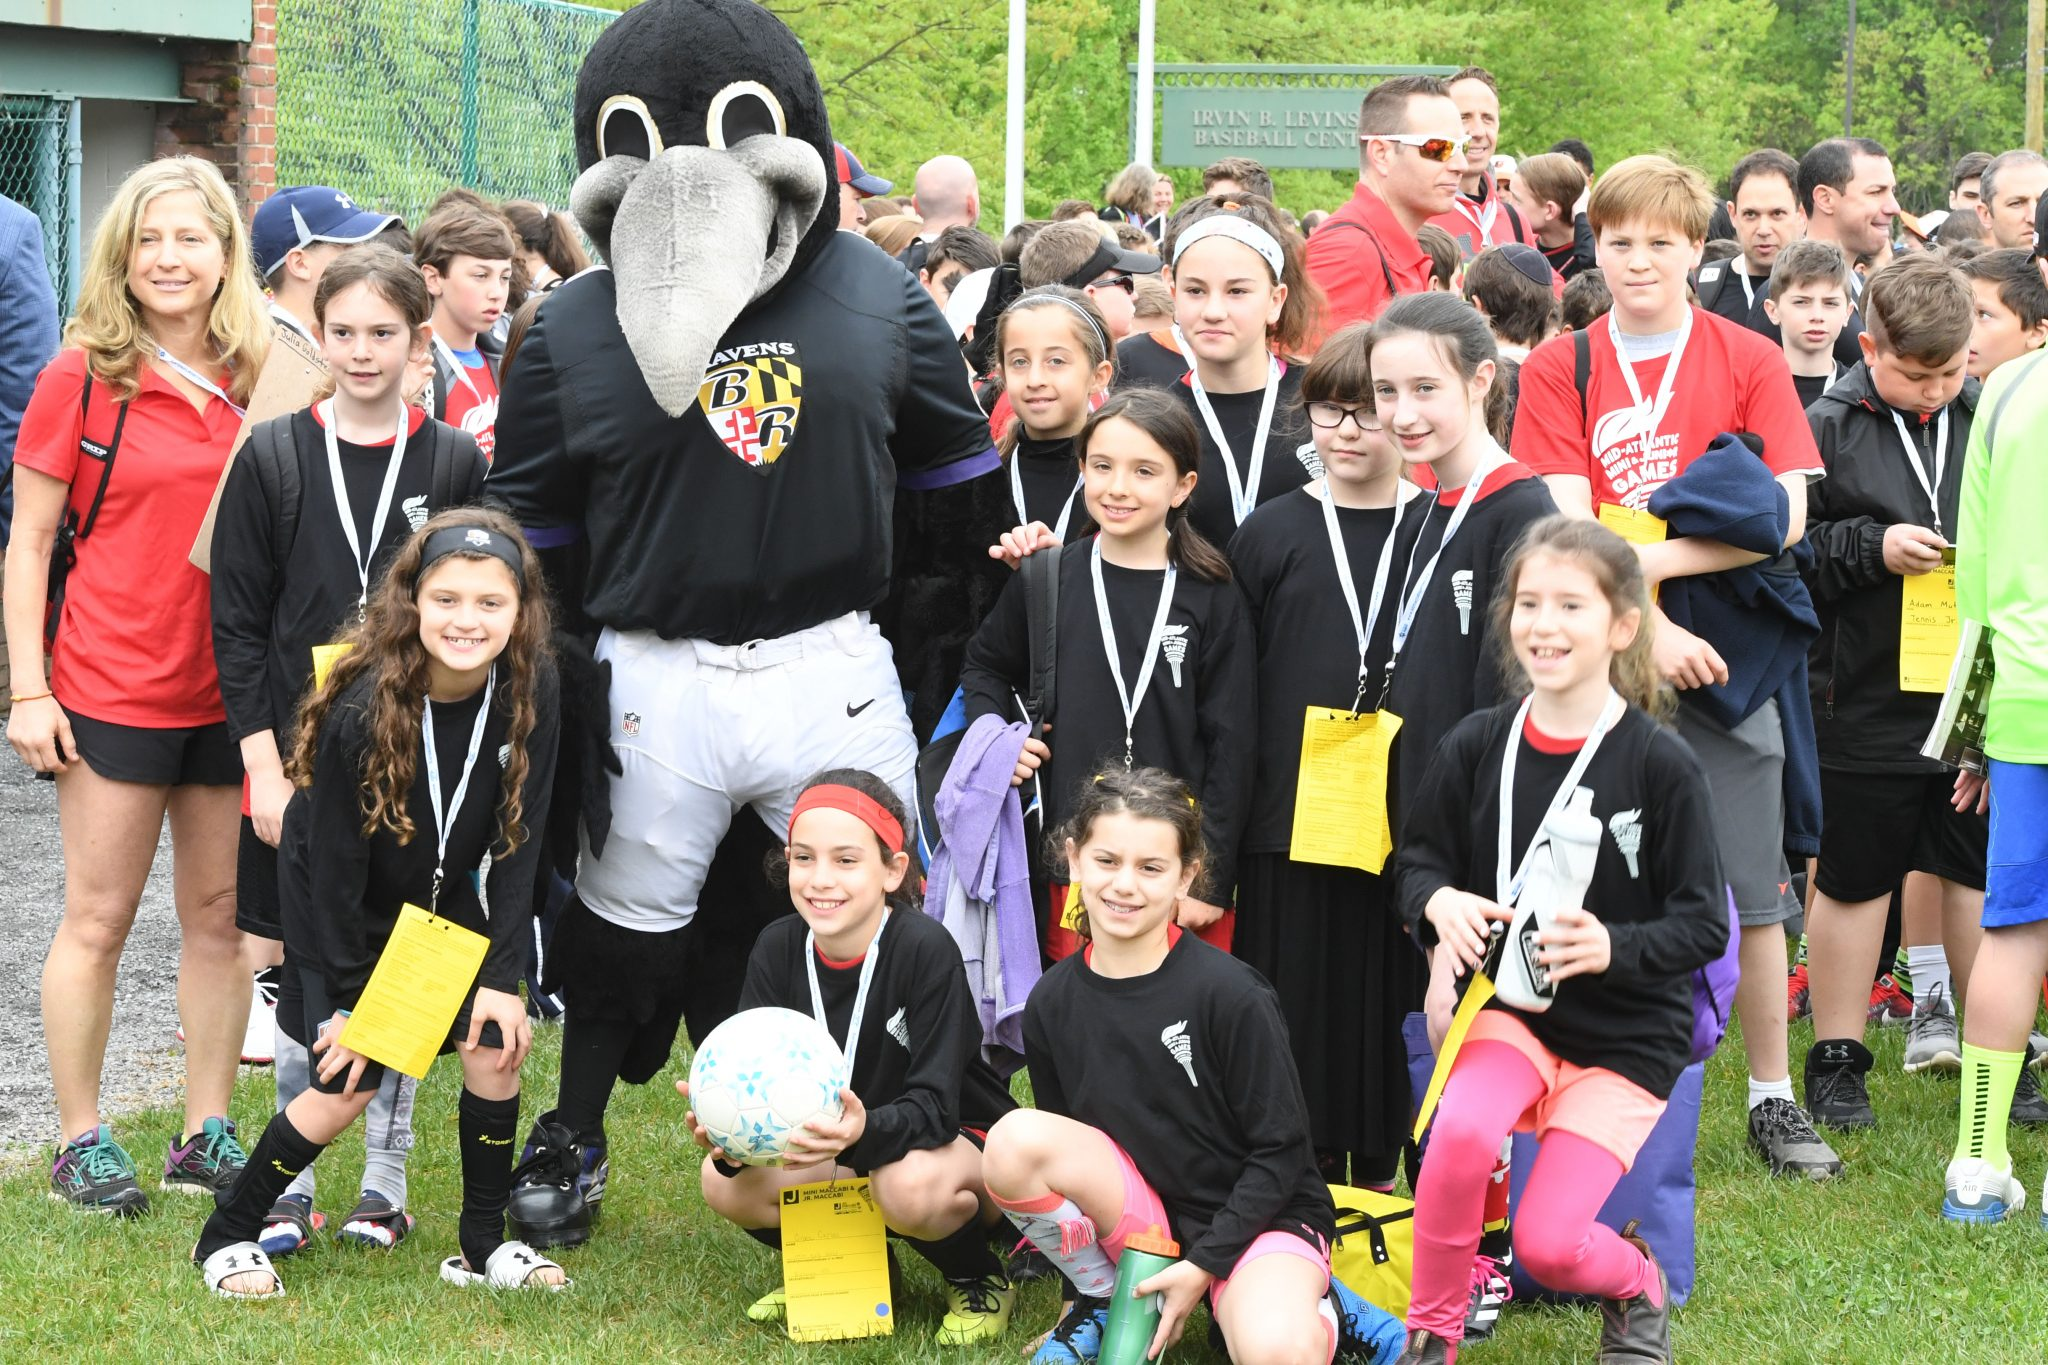 Posing with the Ravens mascot